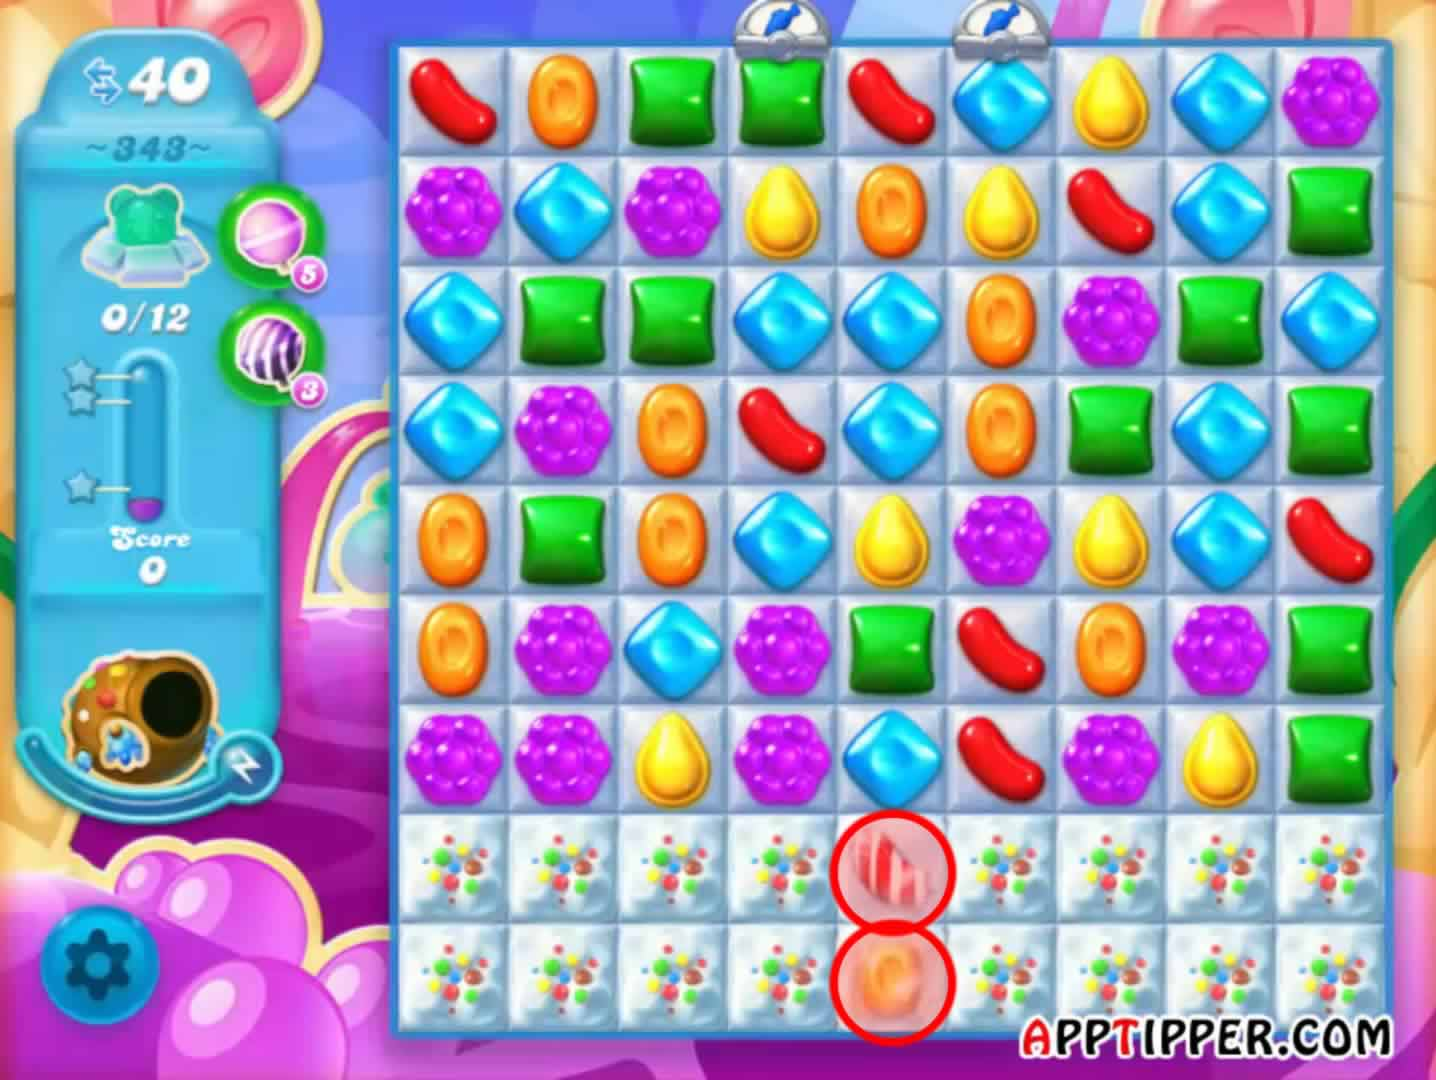 Candy Crush Soda Level 343 Image